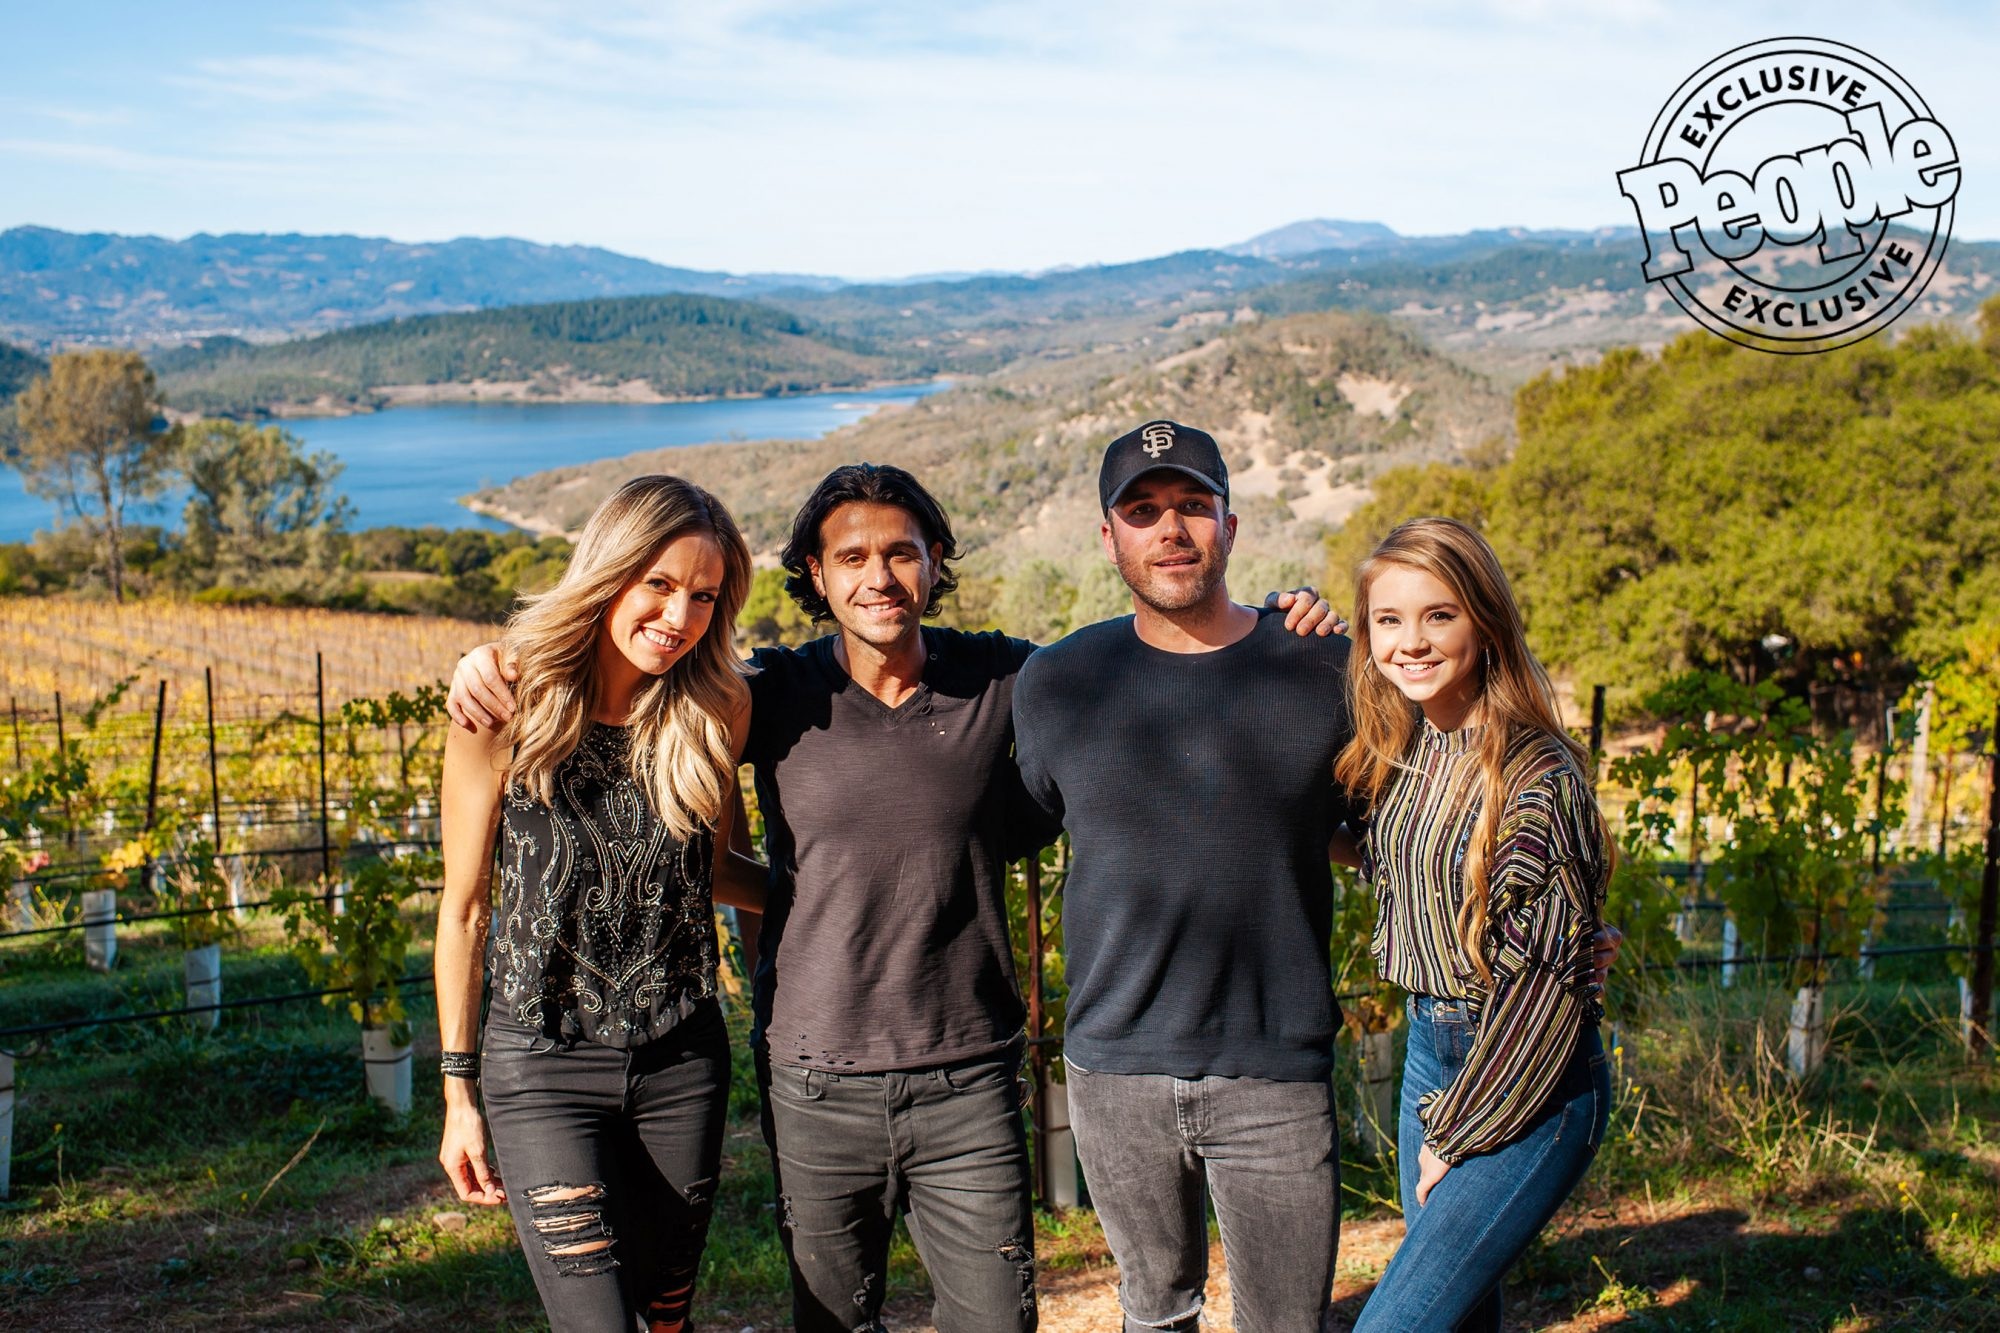 Hailey-&-Michaels,-Tyler-Rich-and-Tegan-Marie-pose-at-Chappellet-Winery-before-the-Country-Breakfast-at-LITV